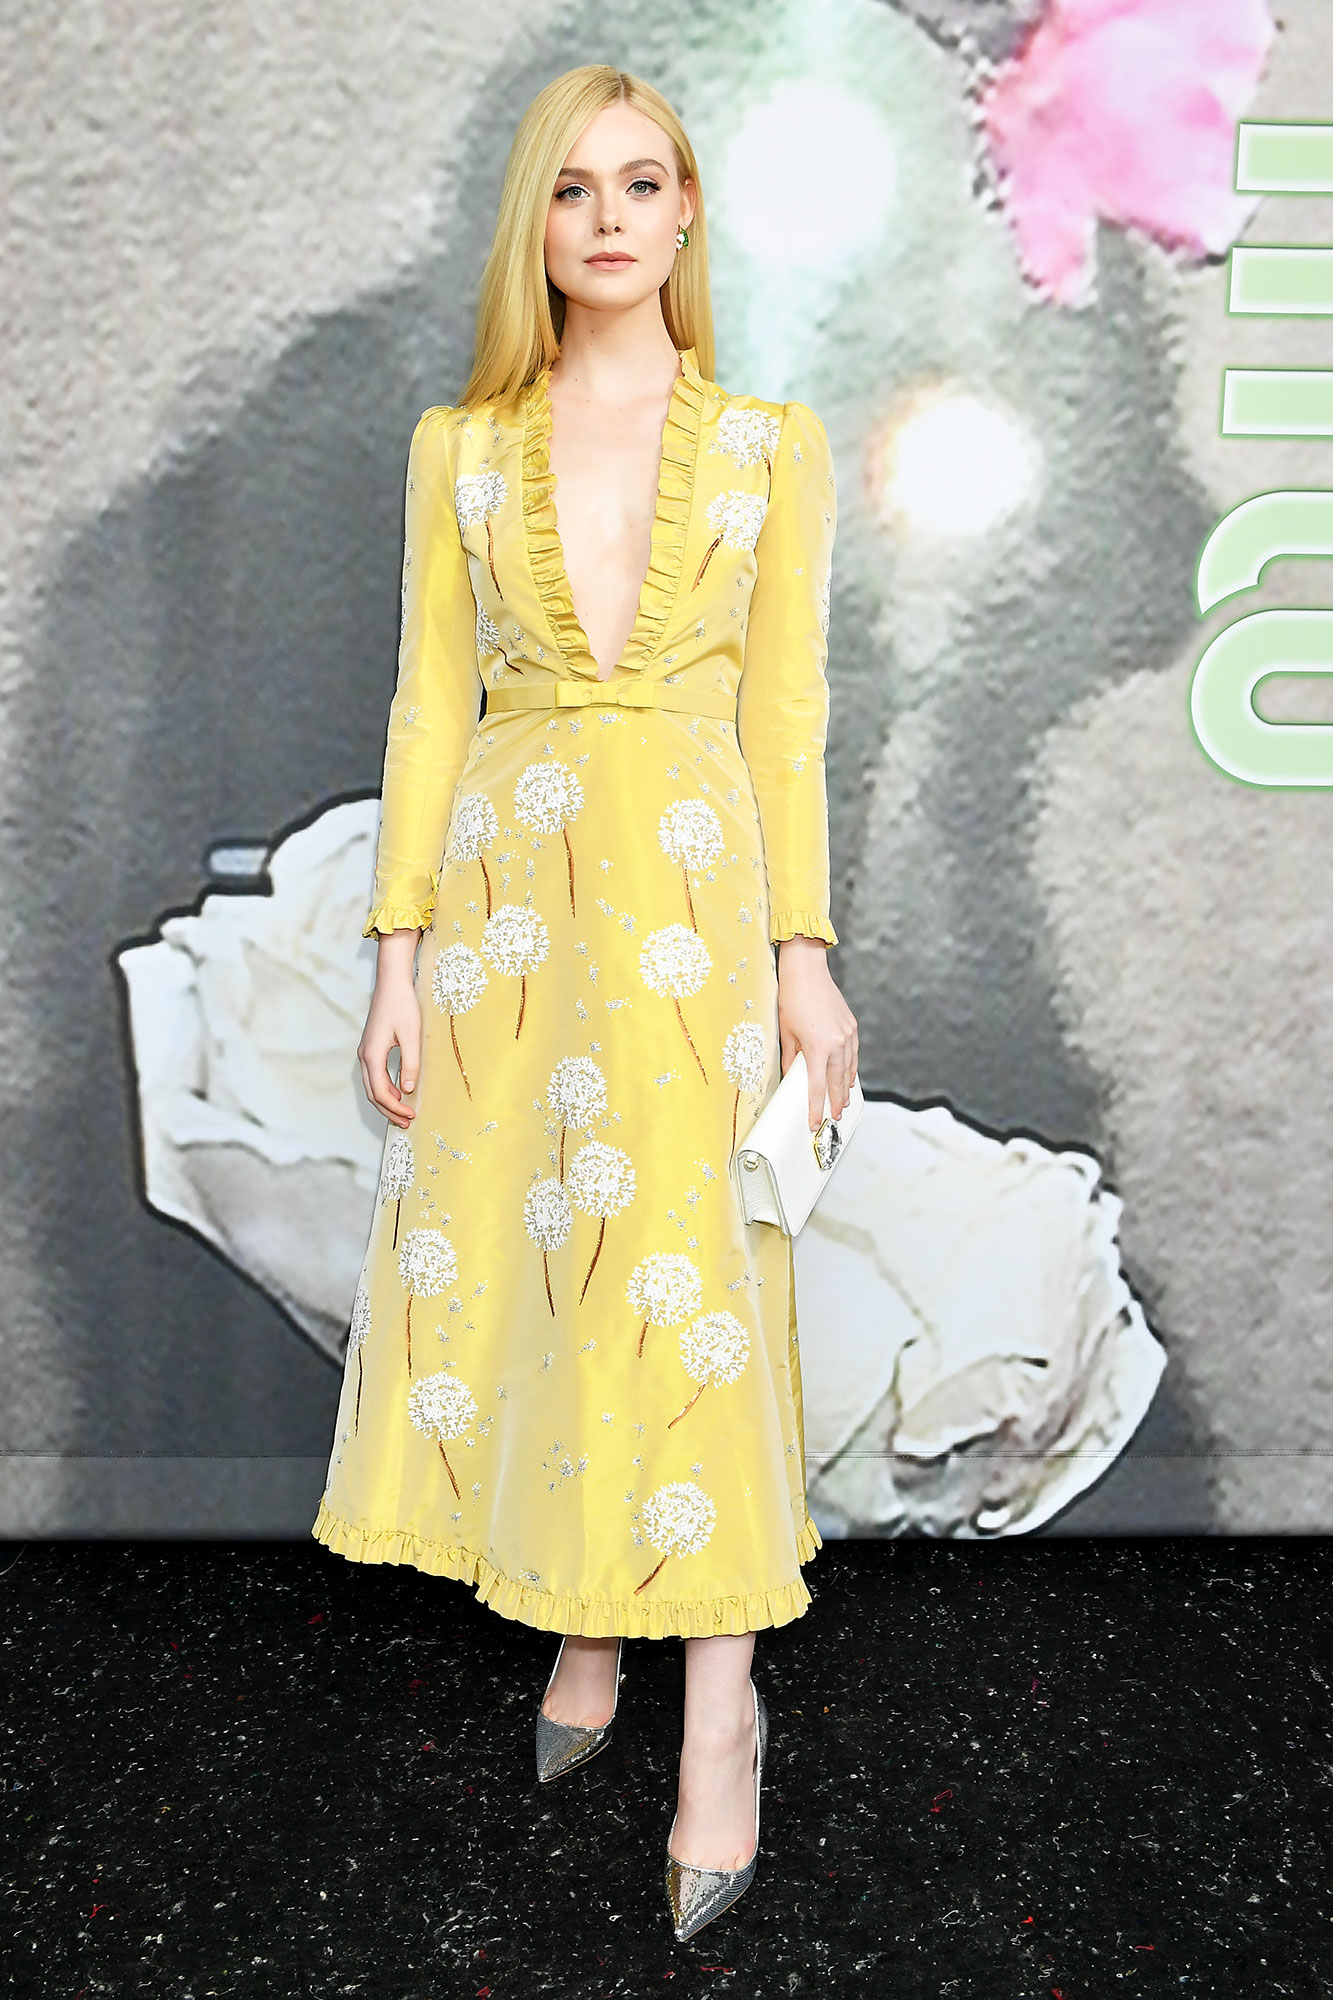 Elle Fanning Stars Continue to Wow on Day 9 of Paris Fashion Week - Elle Fanning attends the Miu Miu show as part of the Paris Fashion Week Womenswear Fall/Winter 2019/2020 on March 05, 2019 in Paris, France.